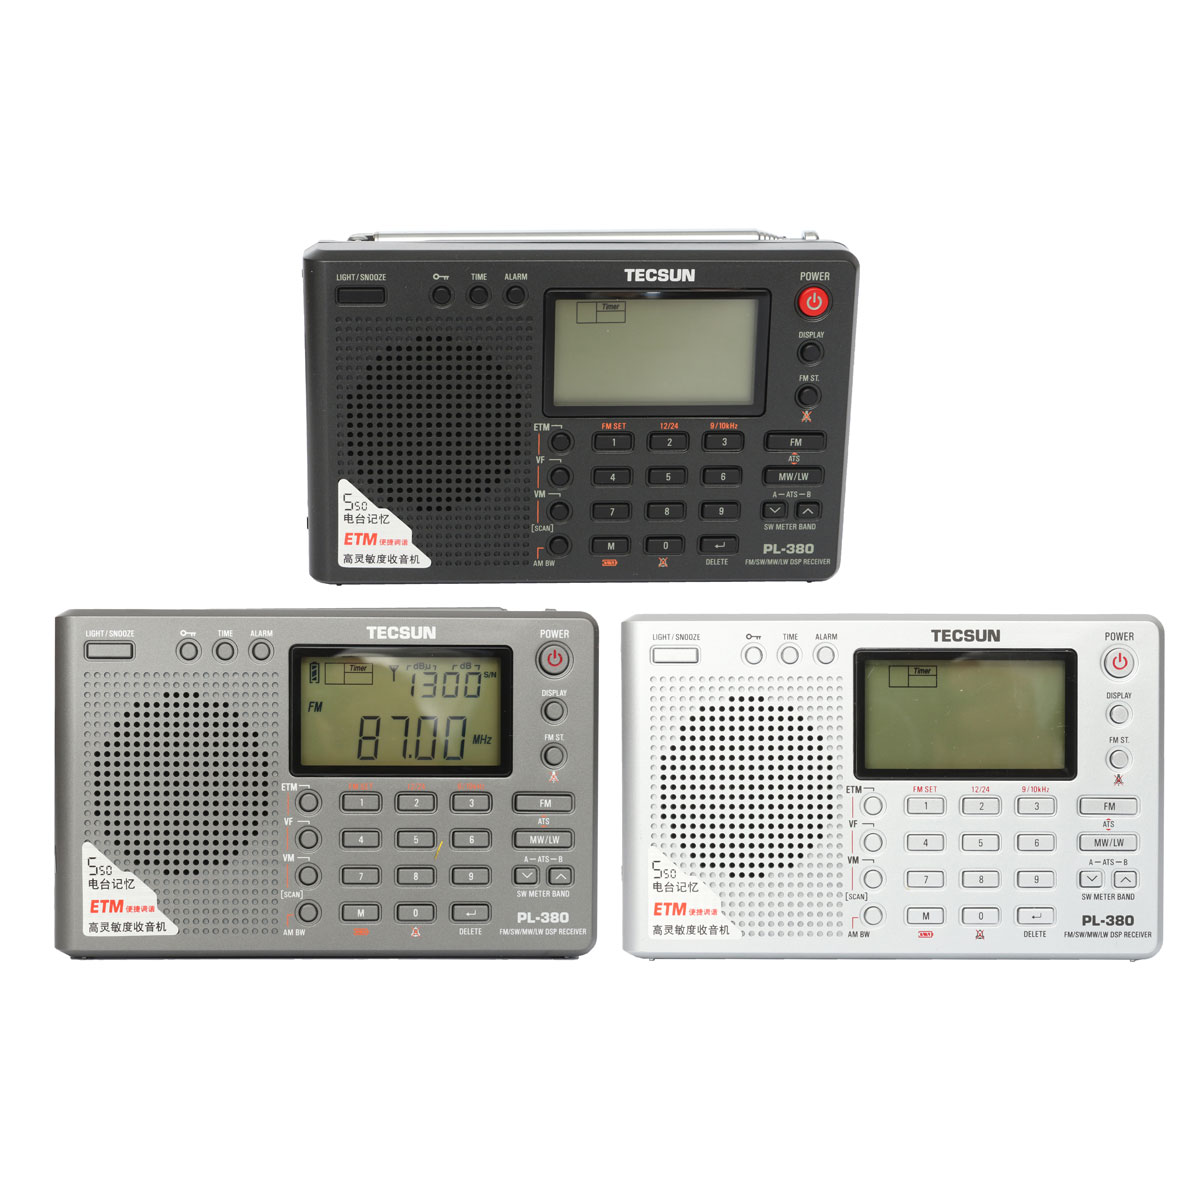 TECSUN PL-380 DSP PLL FM MW SW LW Digital Stereo Radio World-Band Receiver New 135x86x29mm 3 Colors 7 Tuning Mode Selectable new tecsun s2000 s 2000 digital fm stereo lw mw sw ssb air pll synthesized world band radio receiver shipping by dhl